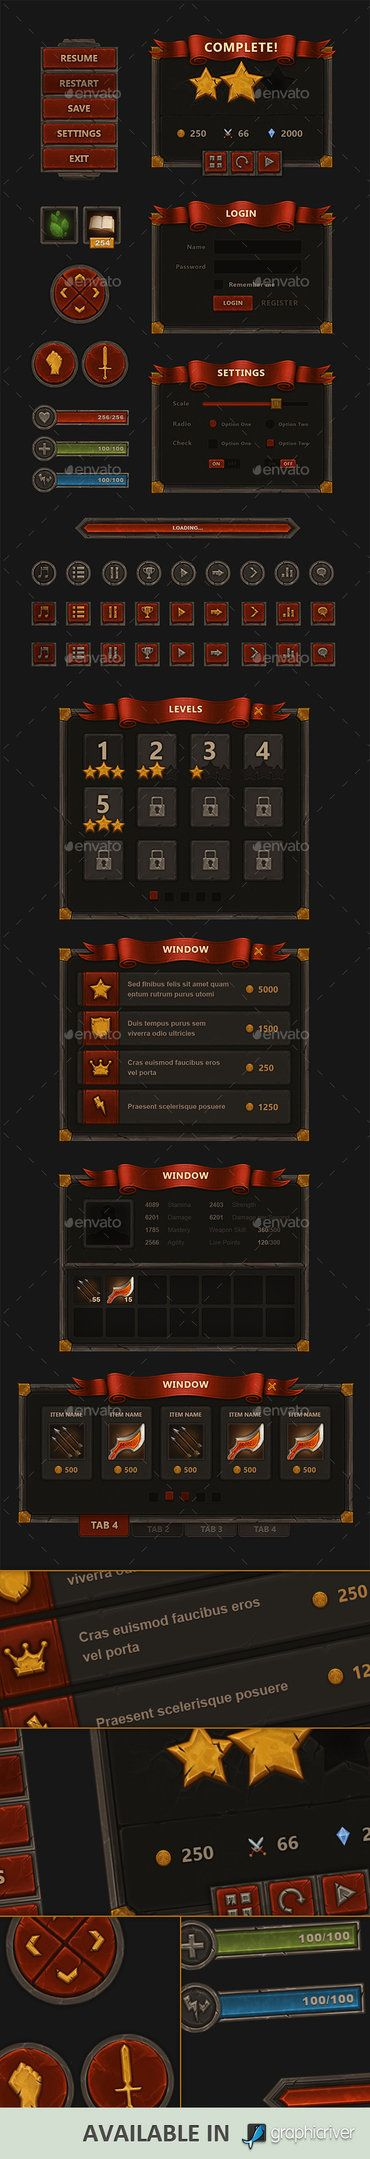 Fantasy Mobile Game Interface - http://graphicriver.net/item/fantasy-mobile-game-interface/9009432?WT.ac=portfolio&WT.z_author=KEvil                                                                                                                                                                                 More